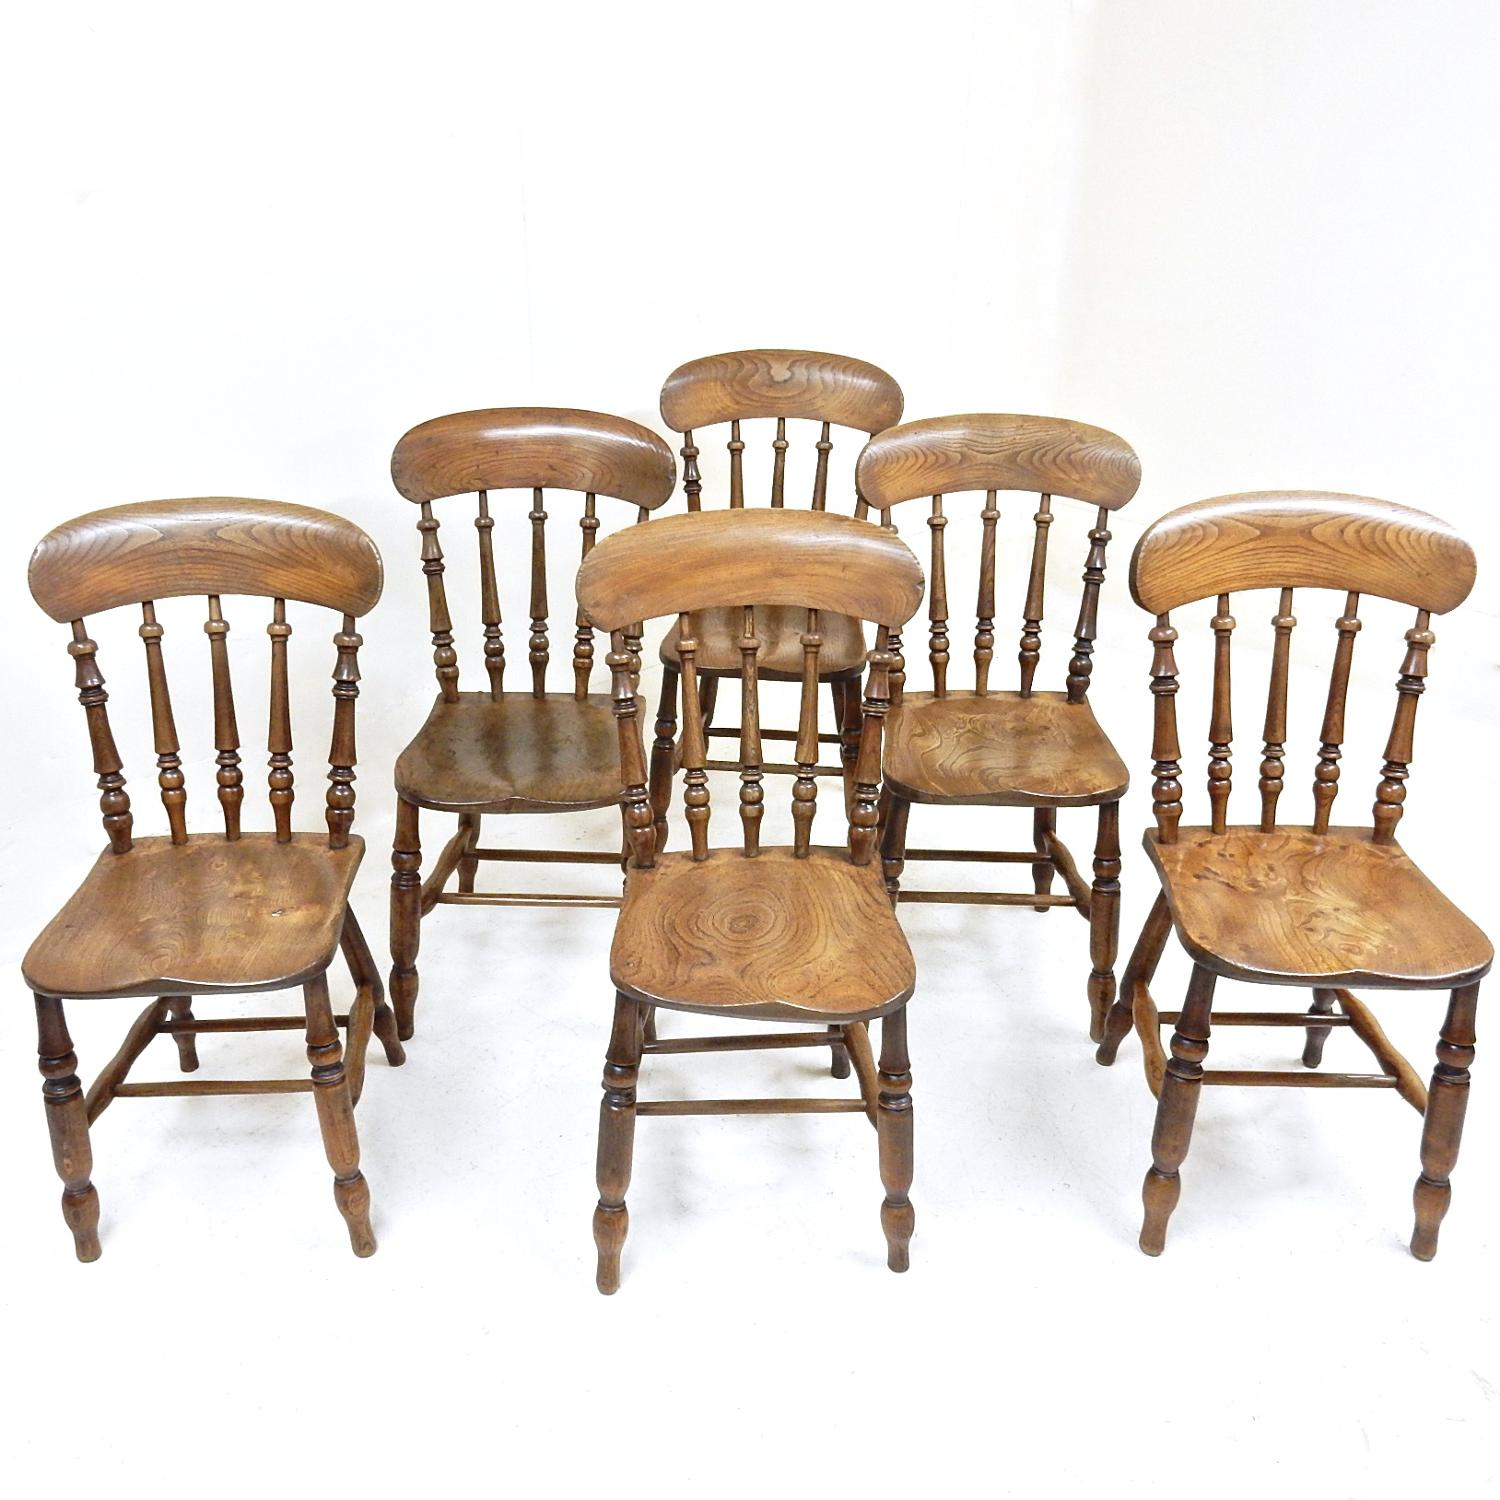 Antique Windsor Kitchen Chairs